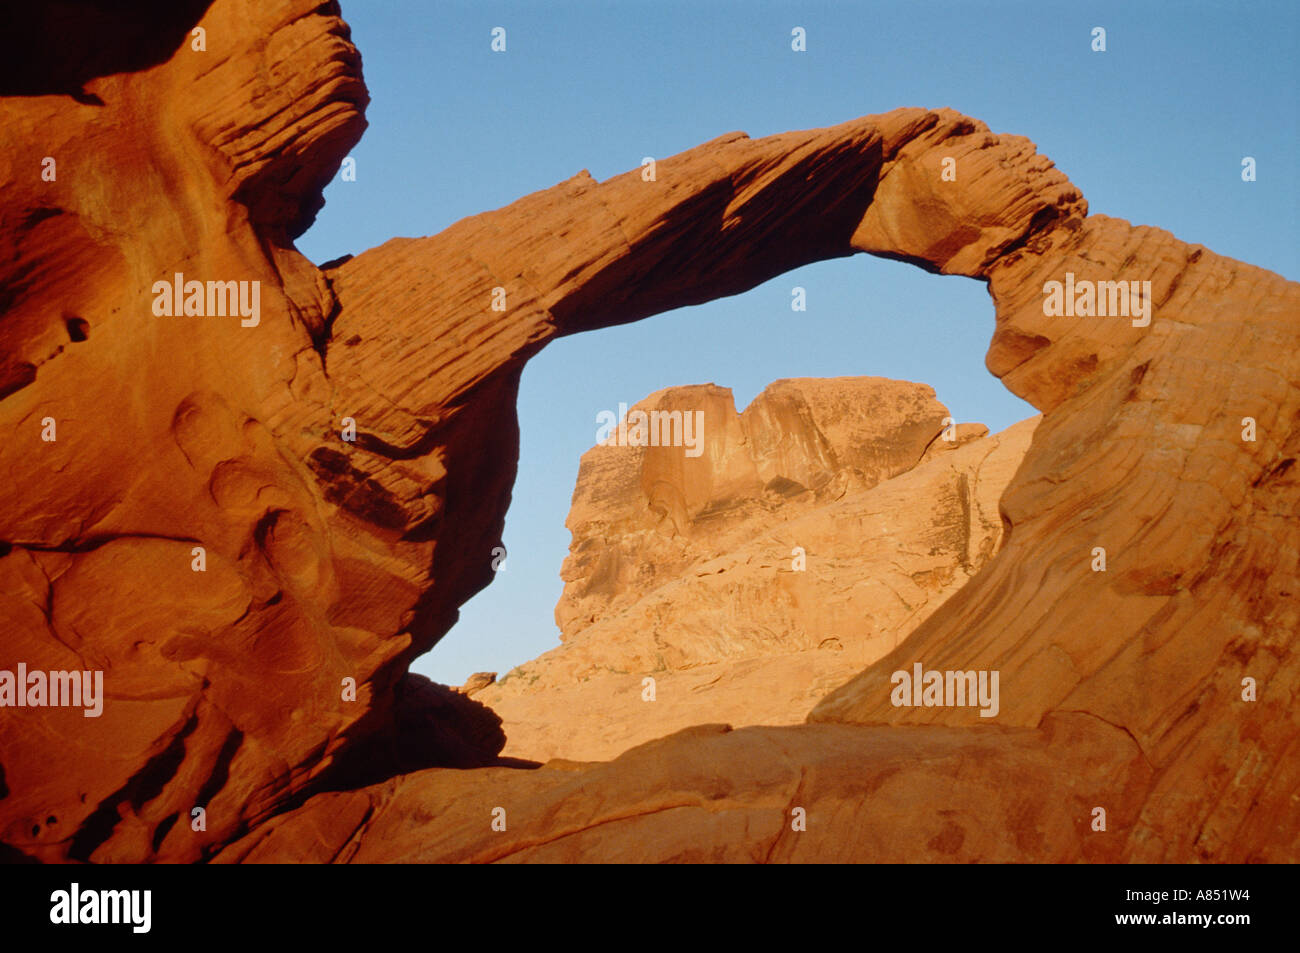 United States of America. Nevada. Mesozoic Sandstone Arch rock formation in the Valley of Fire. - Stock Image